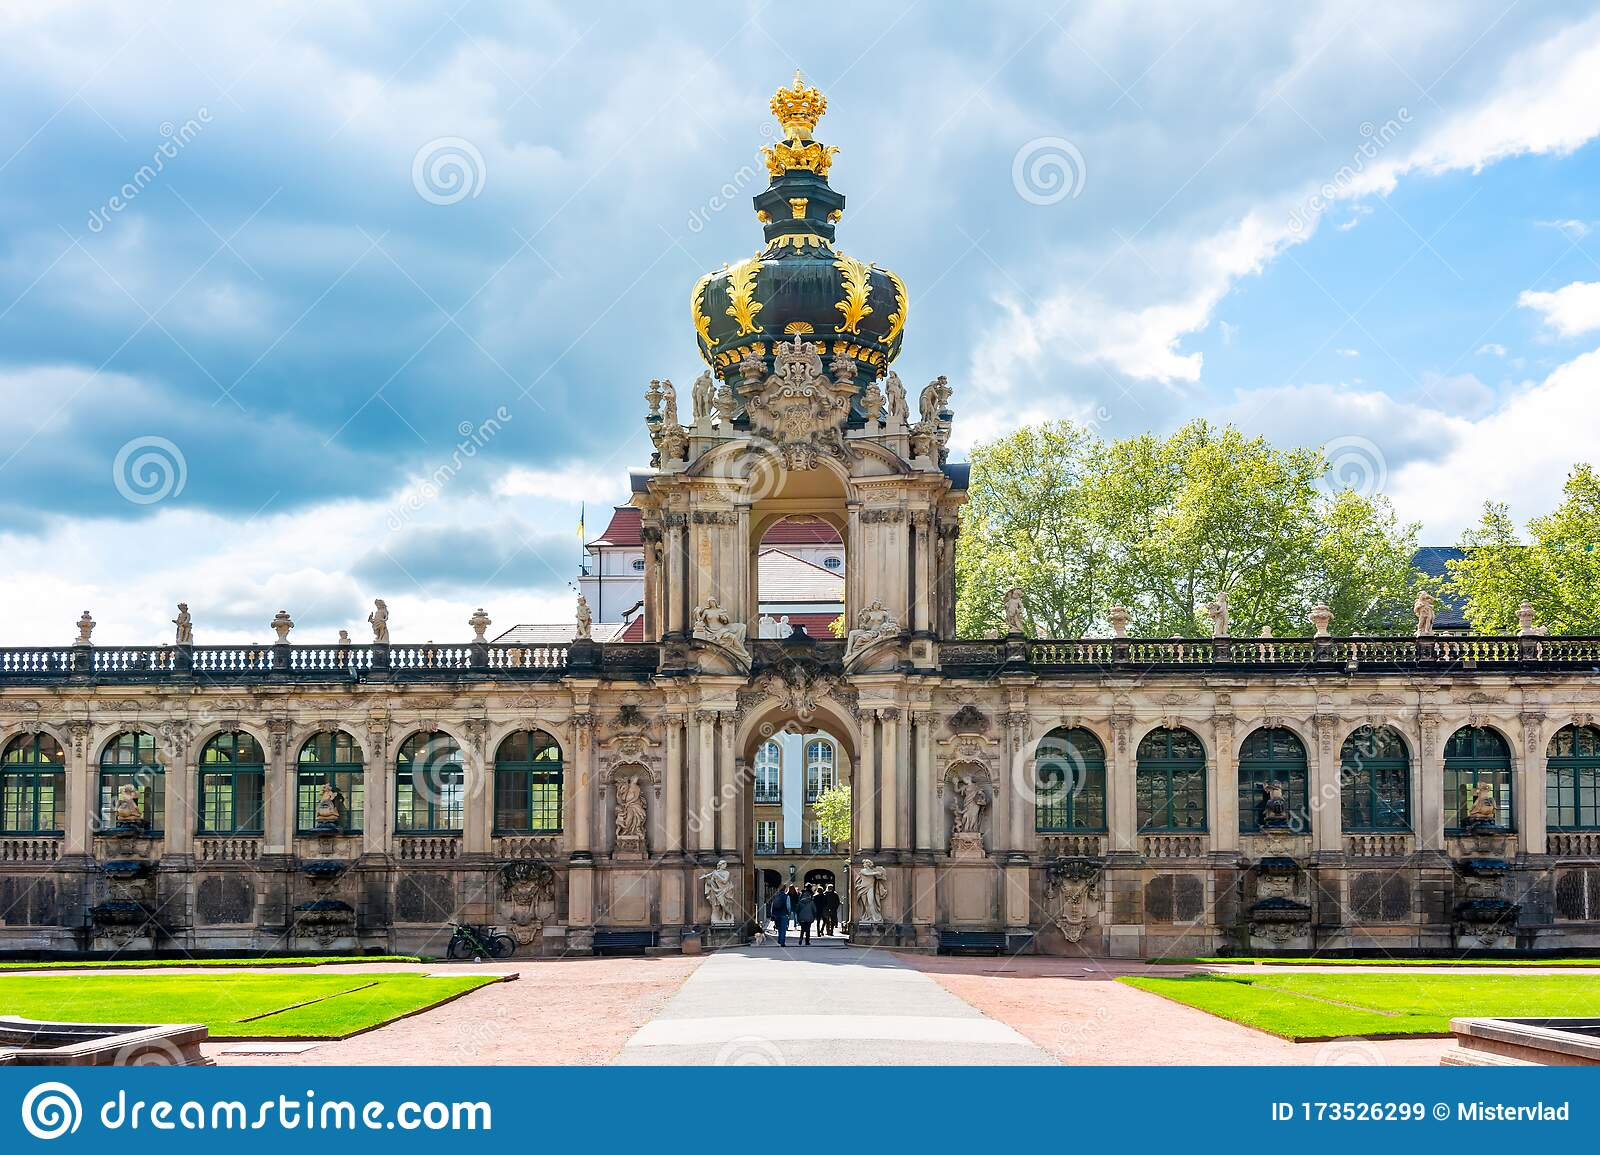 Crown Gate In Dresdner Zwinger Dresden Germany Stock Image Image Of Antique Baroque 173526299